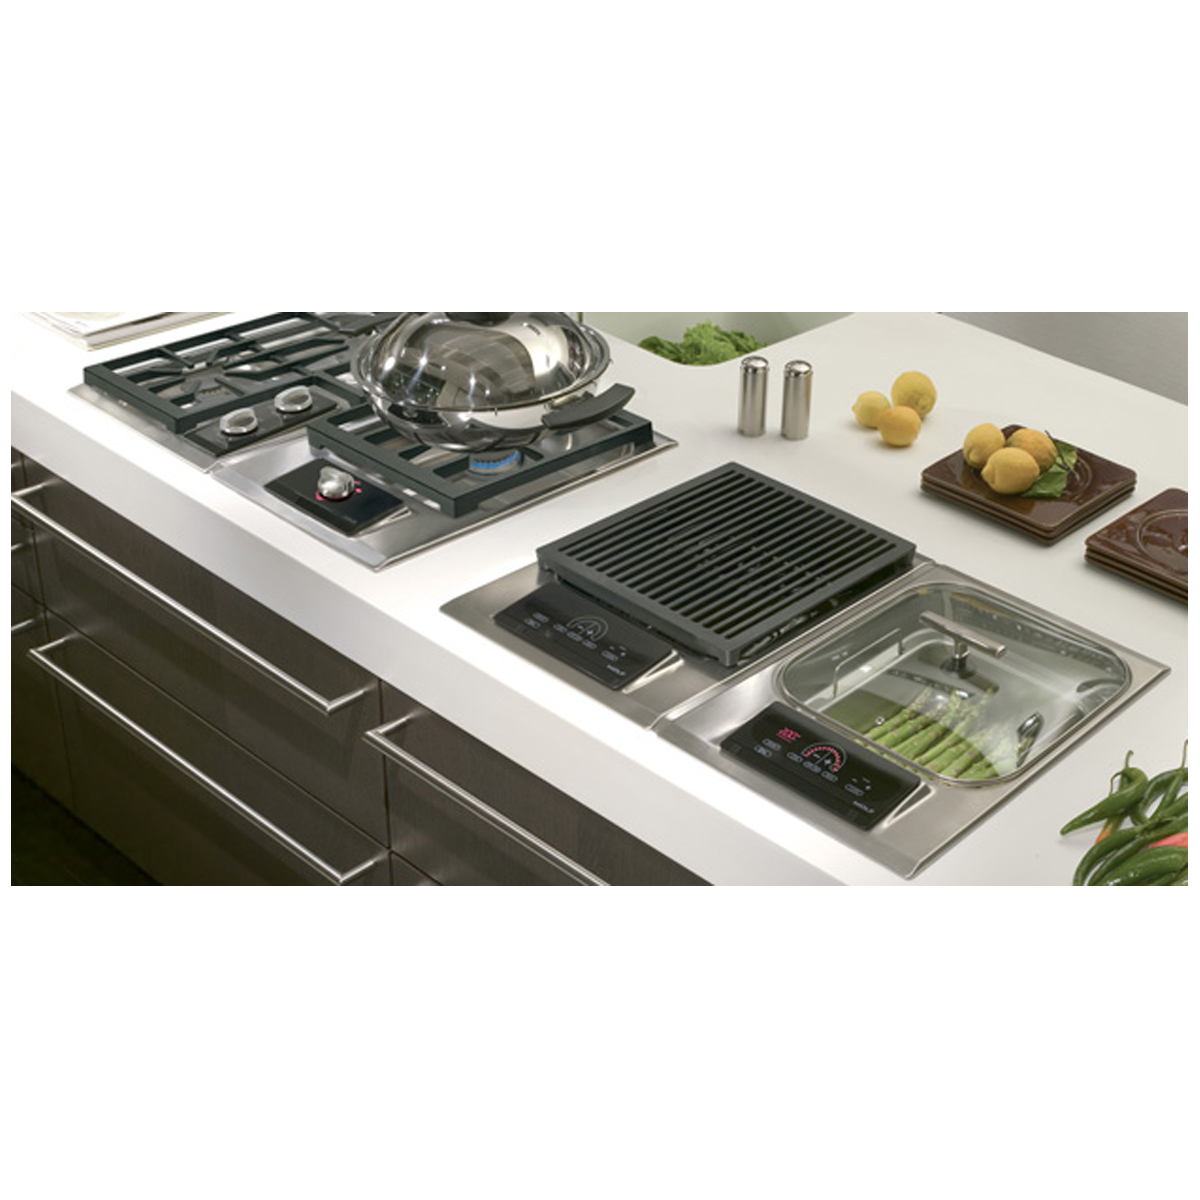 Wolf ICBIG15S 381 Electric Grill Cooktop